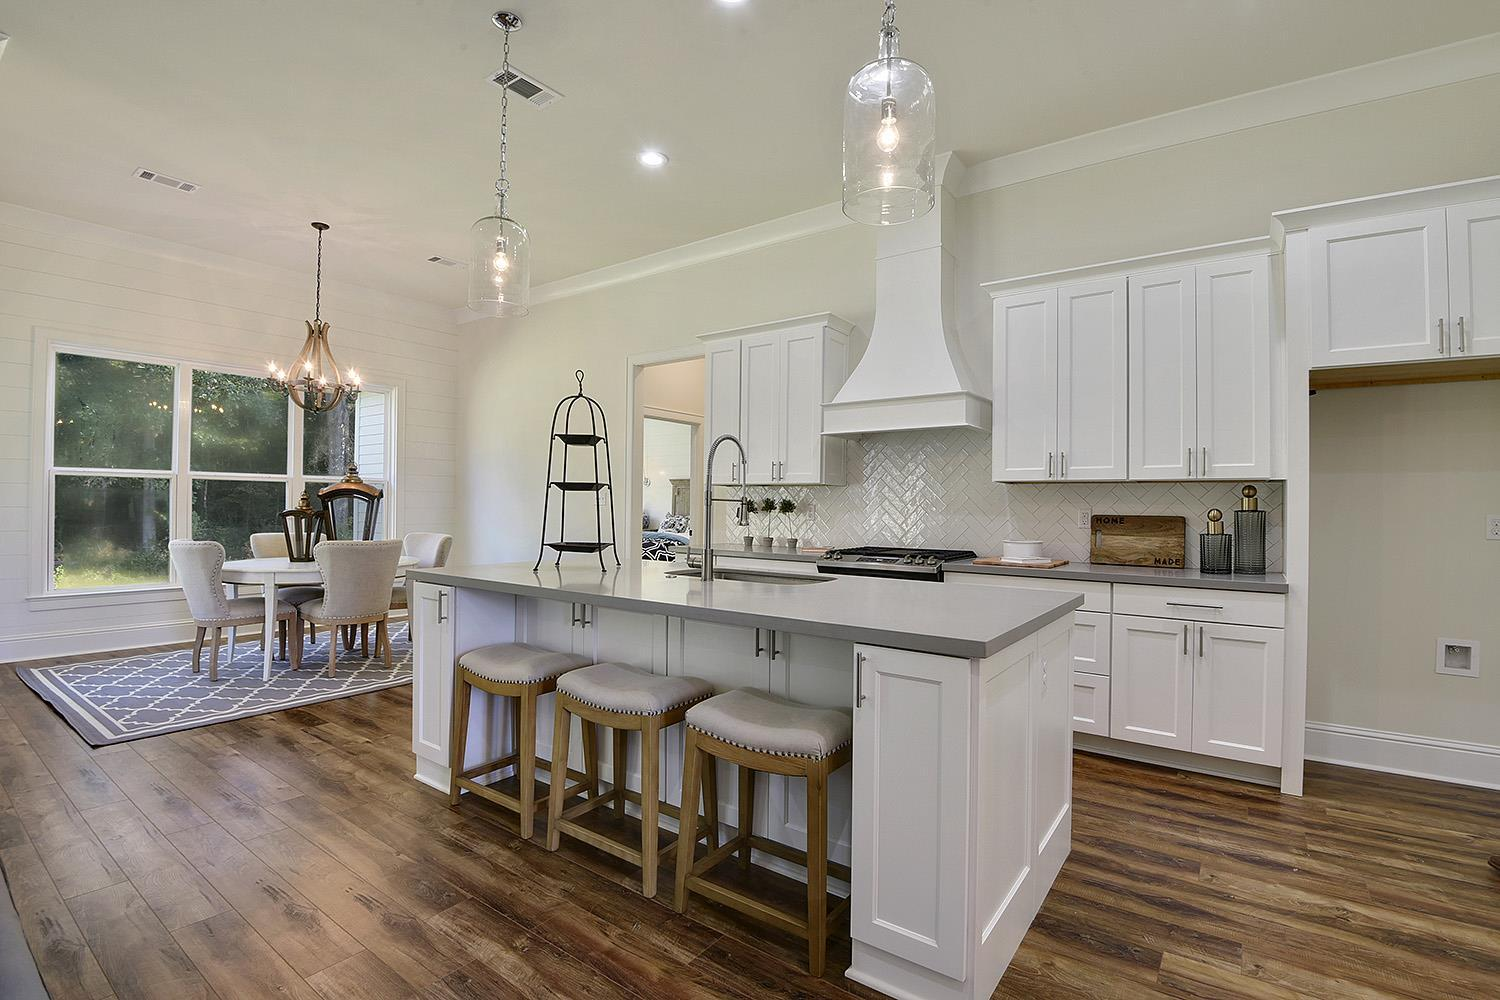 Kitchen featured in the Loren By Highland Homes in New Orleans, LA